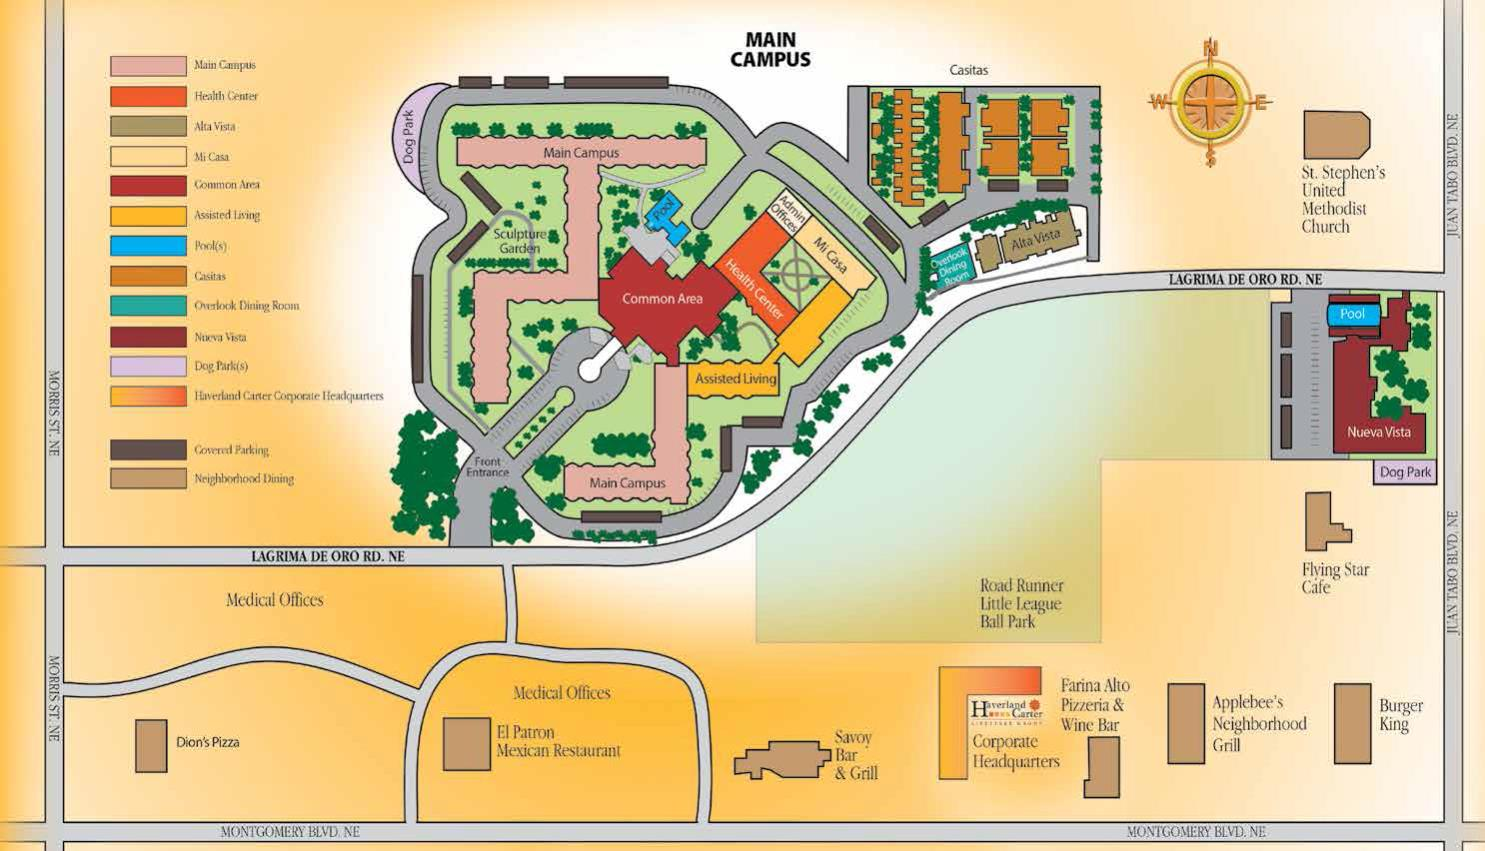 Campus Overview Map